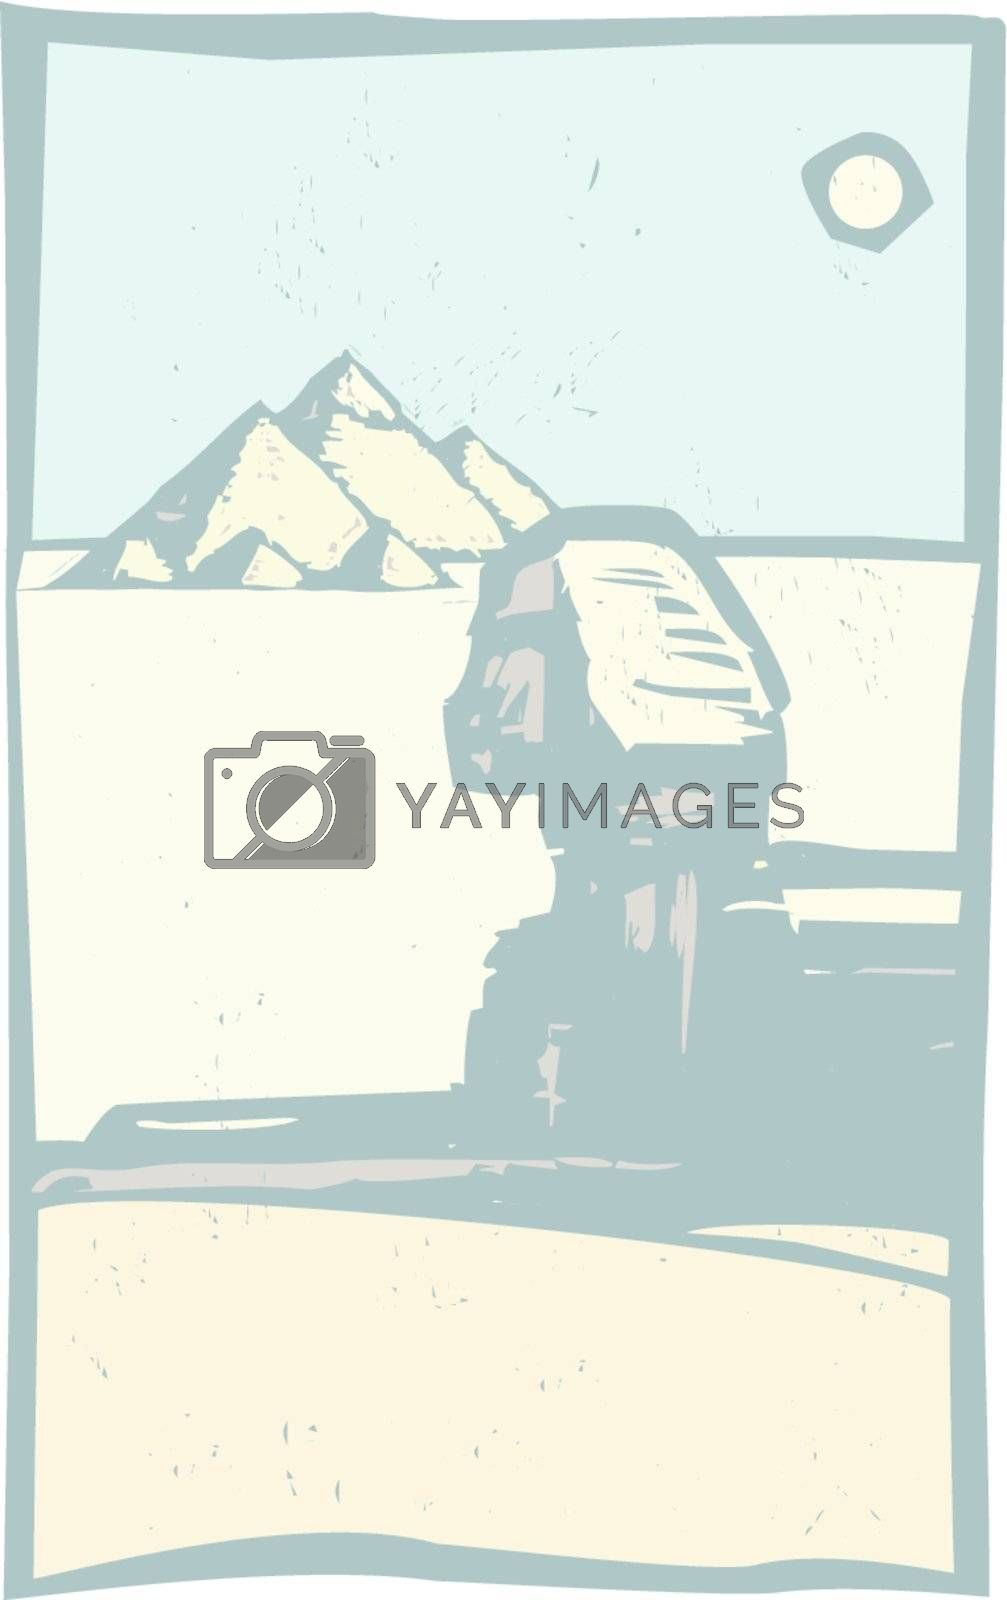 Woodcut style Egyptian Sphinx with pyramids in a travel image.